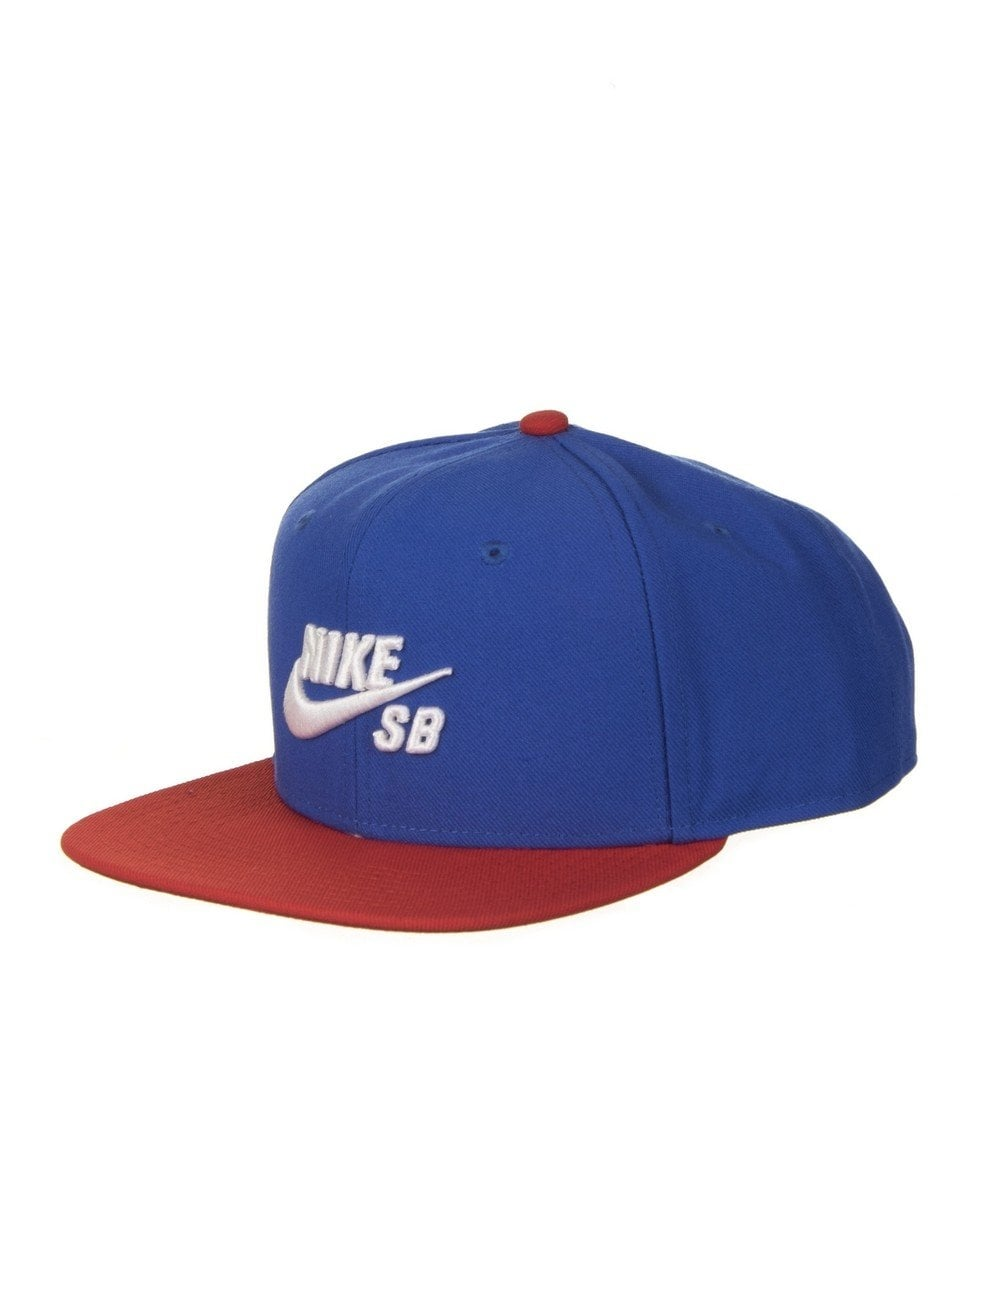 cb9ef227 Nike SB Icon Pro Snapback Hat - Game Royal/White - Accessories from ...